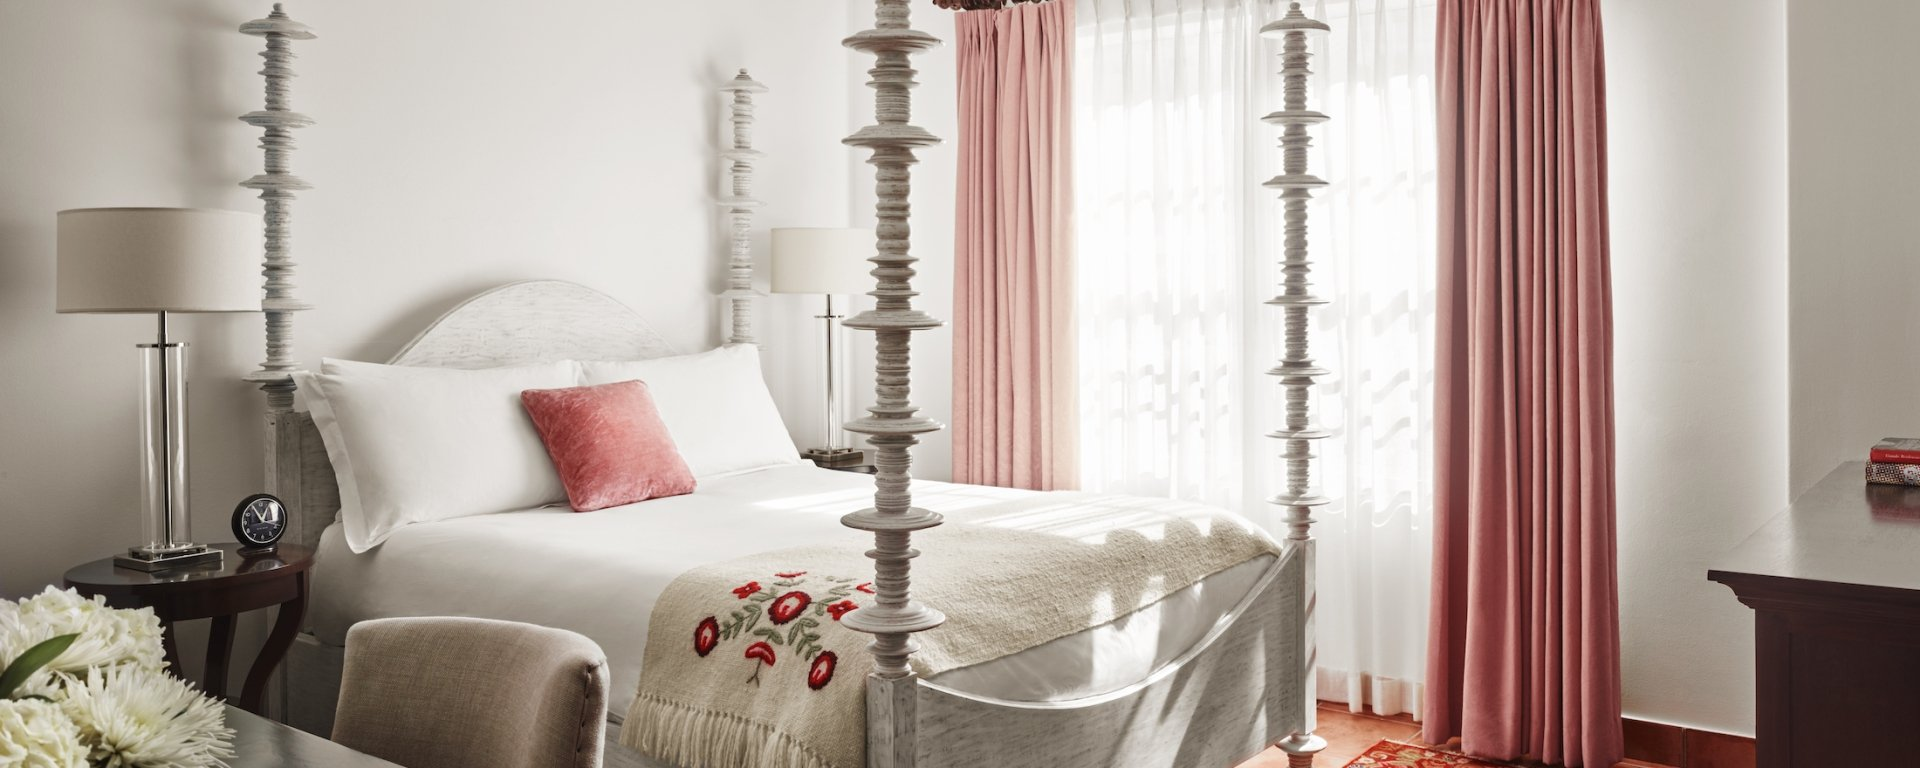 queen bed with four posts and pink curtained windows and red and gold carpet